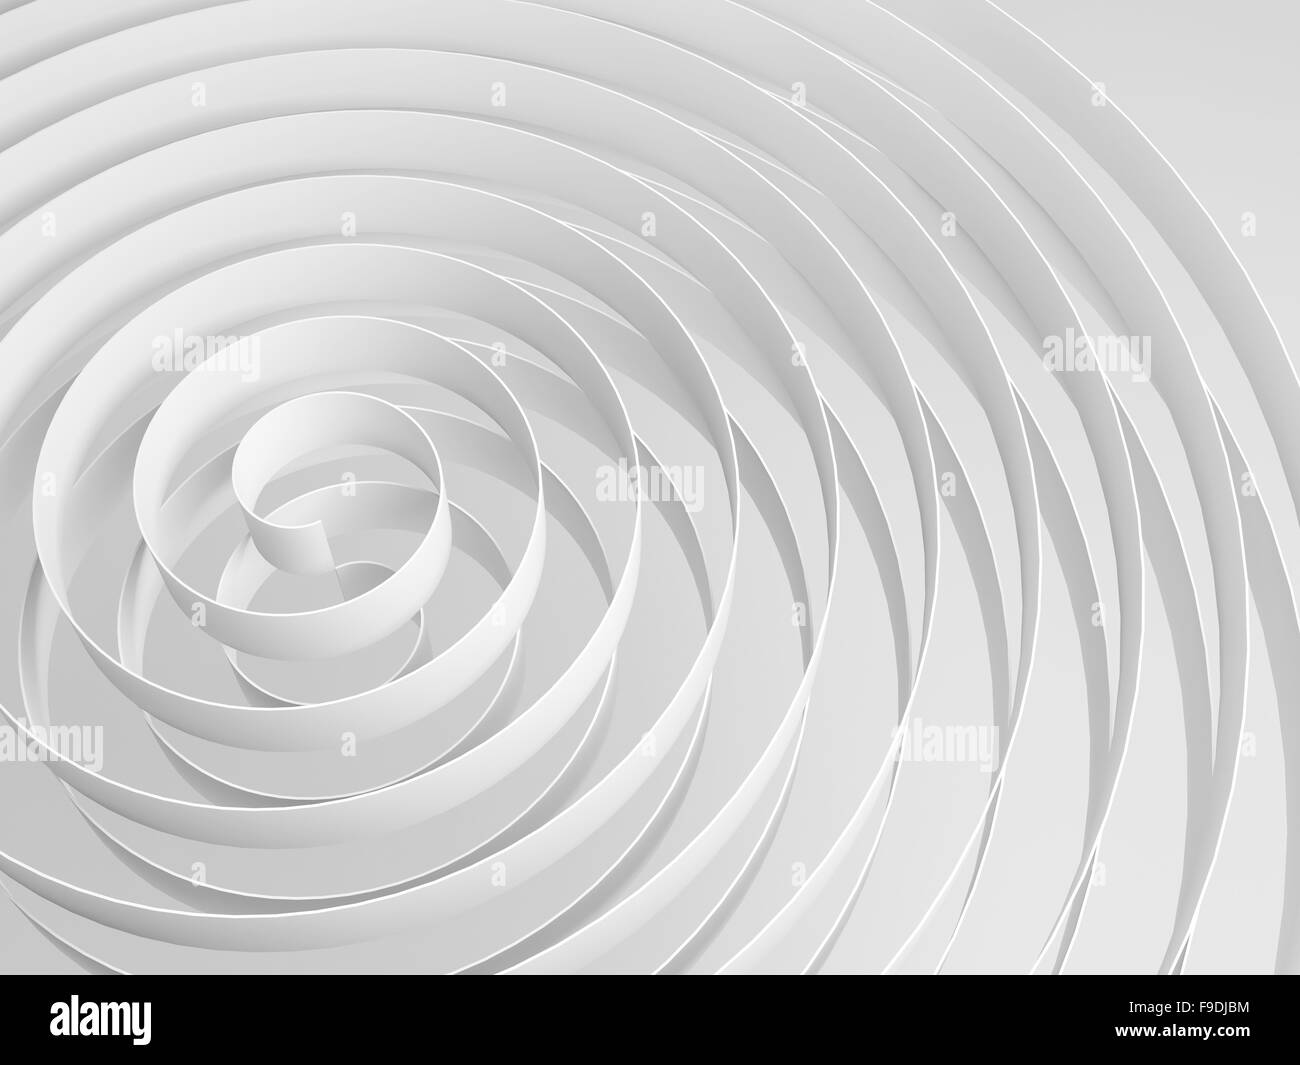 White 3d spirals with soft shadows, abstract digital illustration, monochrome background pattern - Stock Image